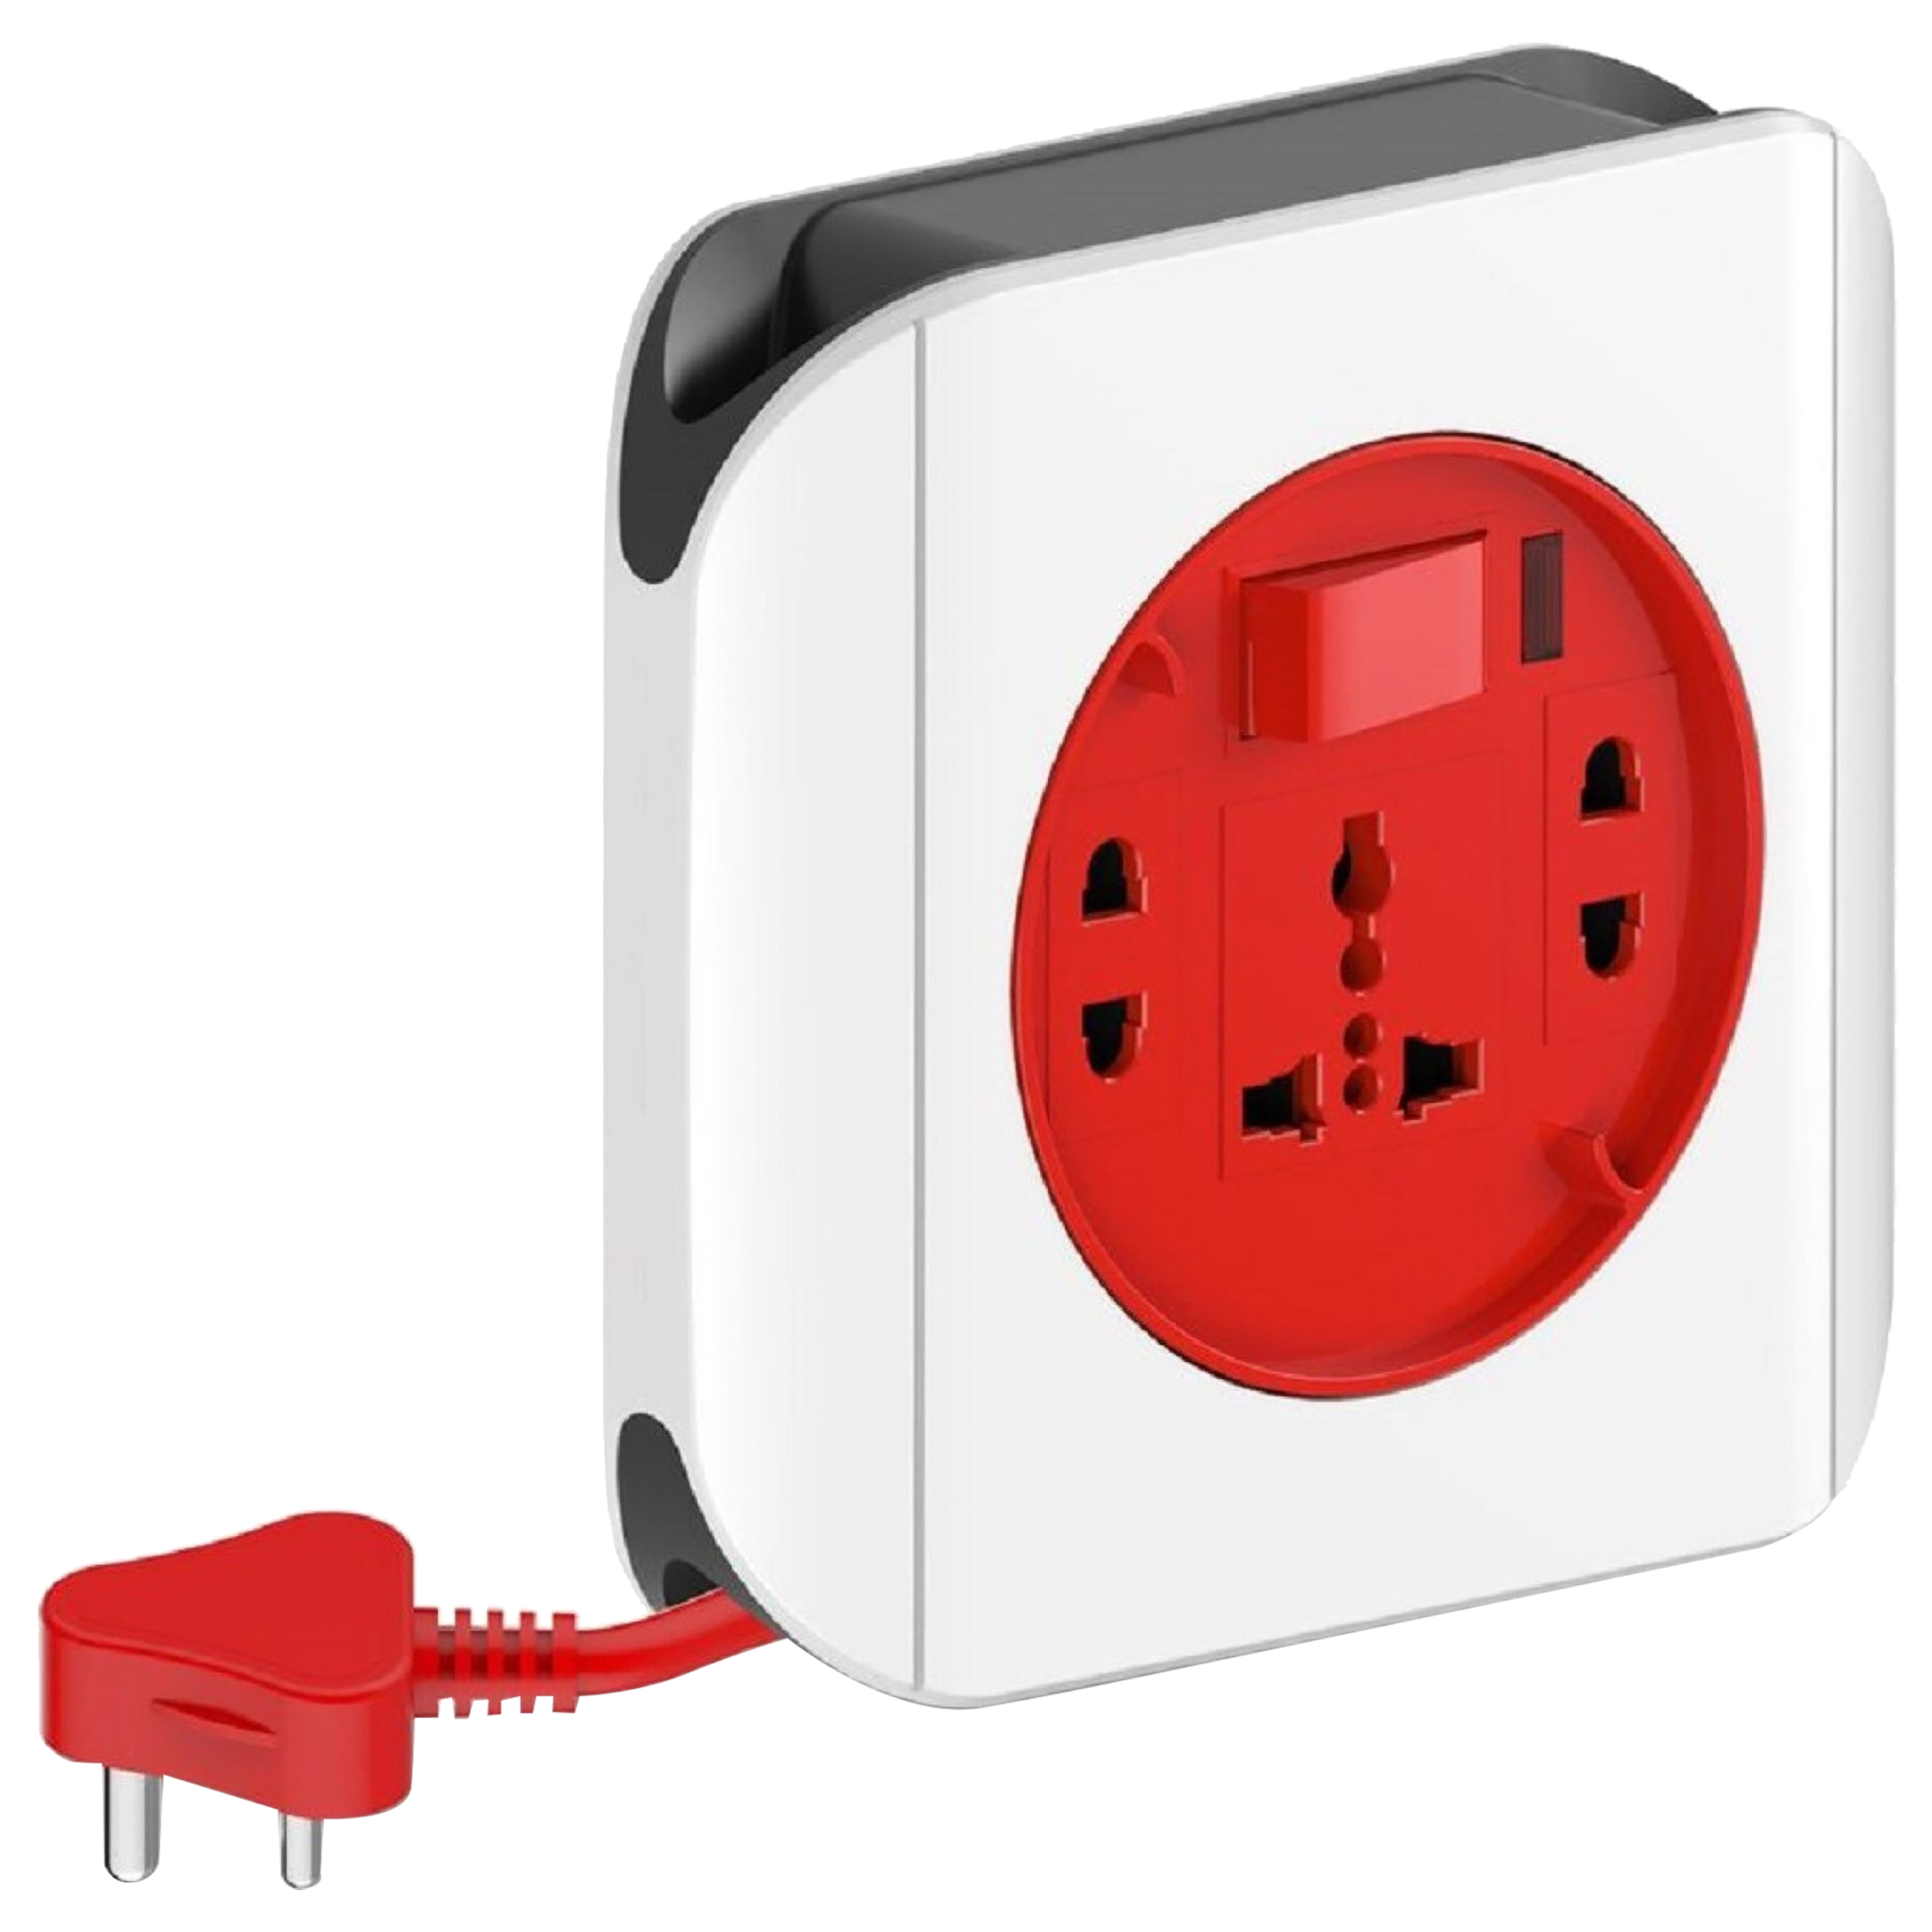 Goldmedal Curve Dazzle 6 Amp 3 Sockets Extension Board 4 Meters (High Grade Fire Retardant Plastic, 205121, White/Red)_1